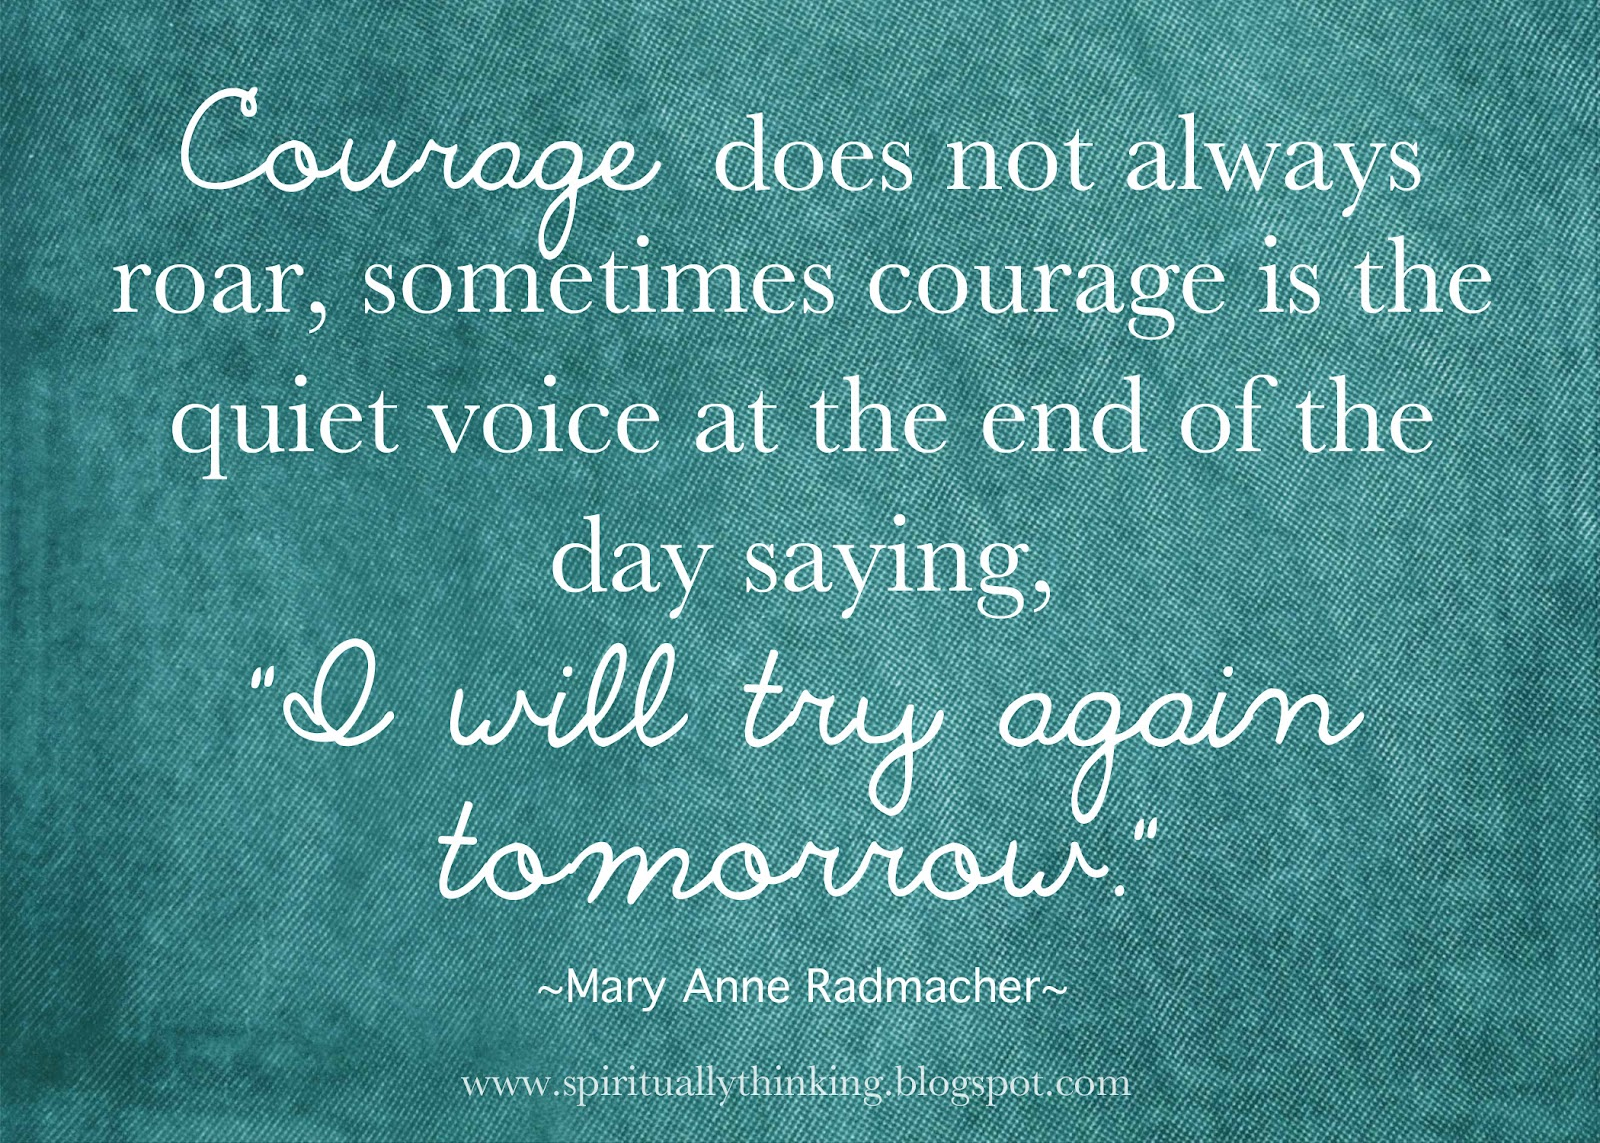 and spiritually speaking courage